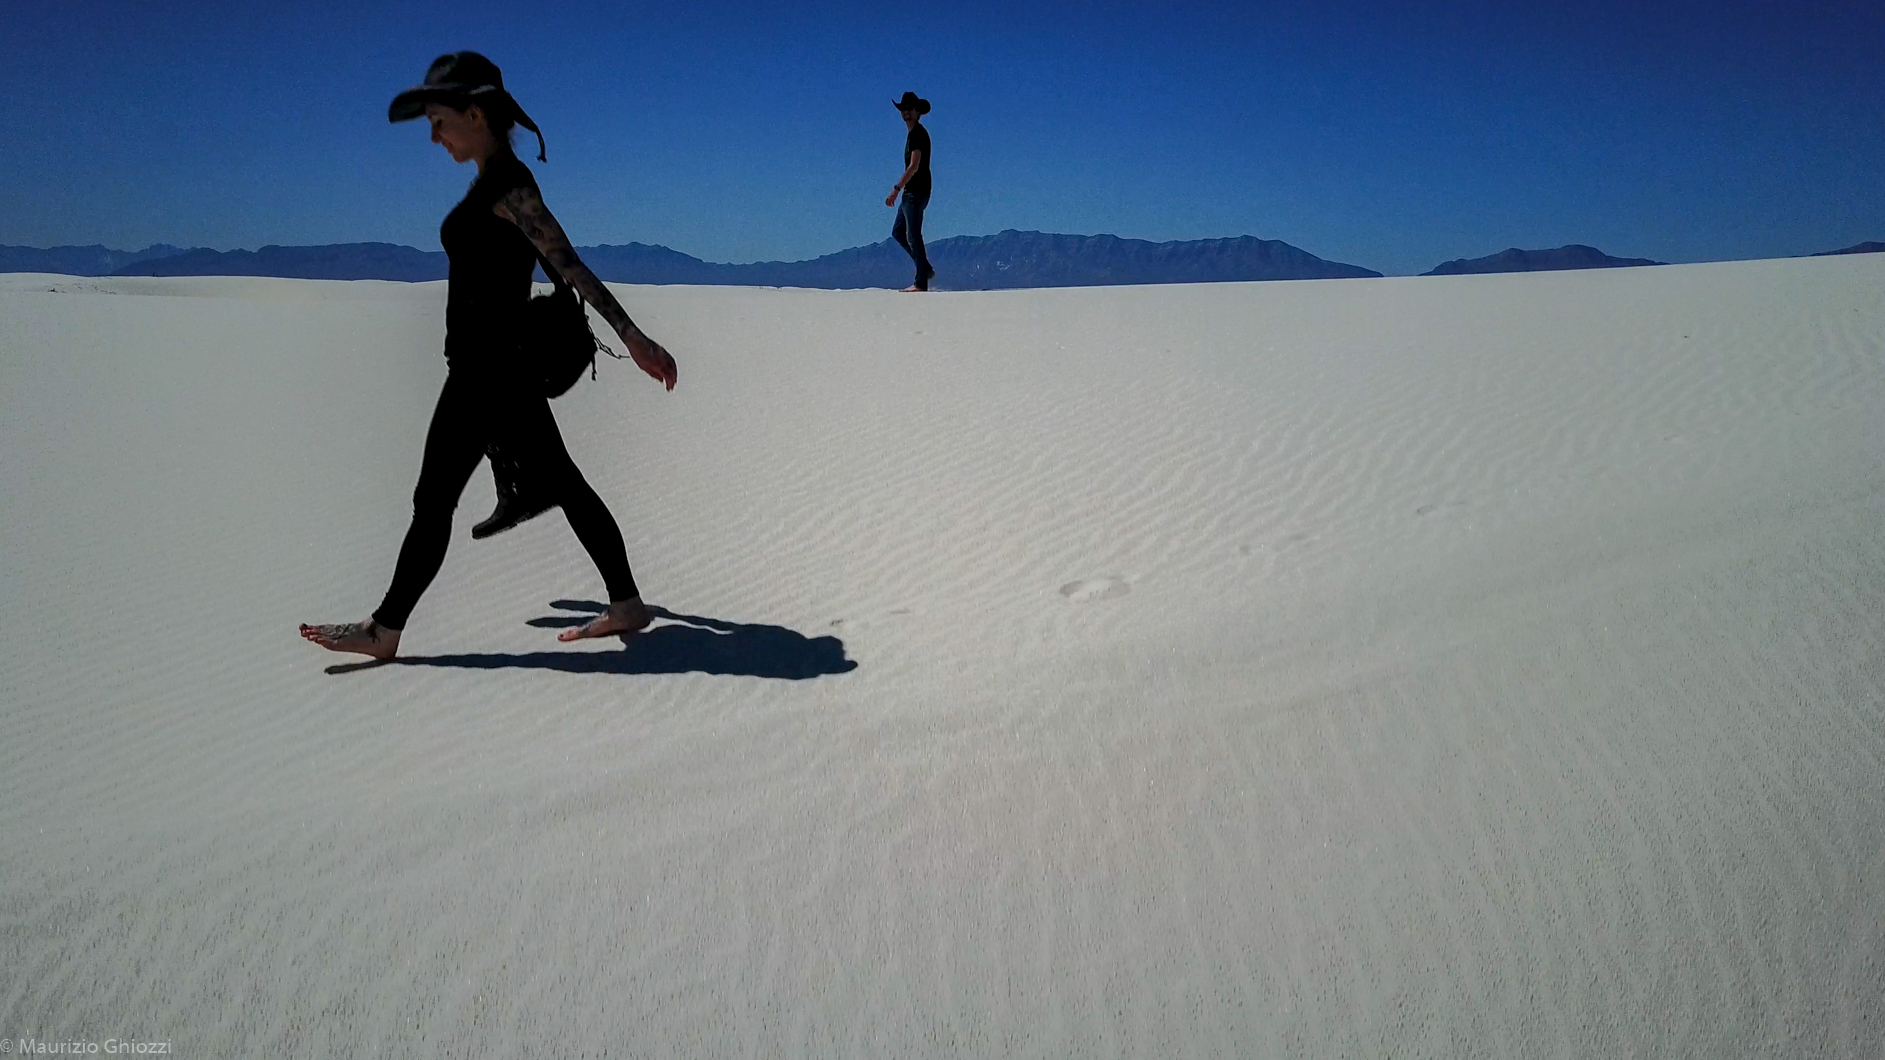 White sands desert New Mexico